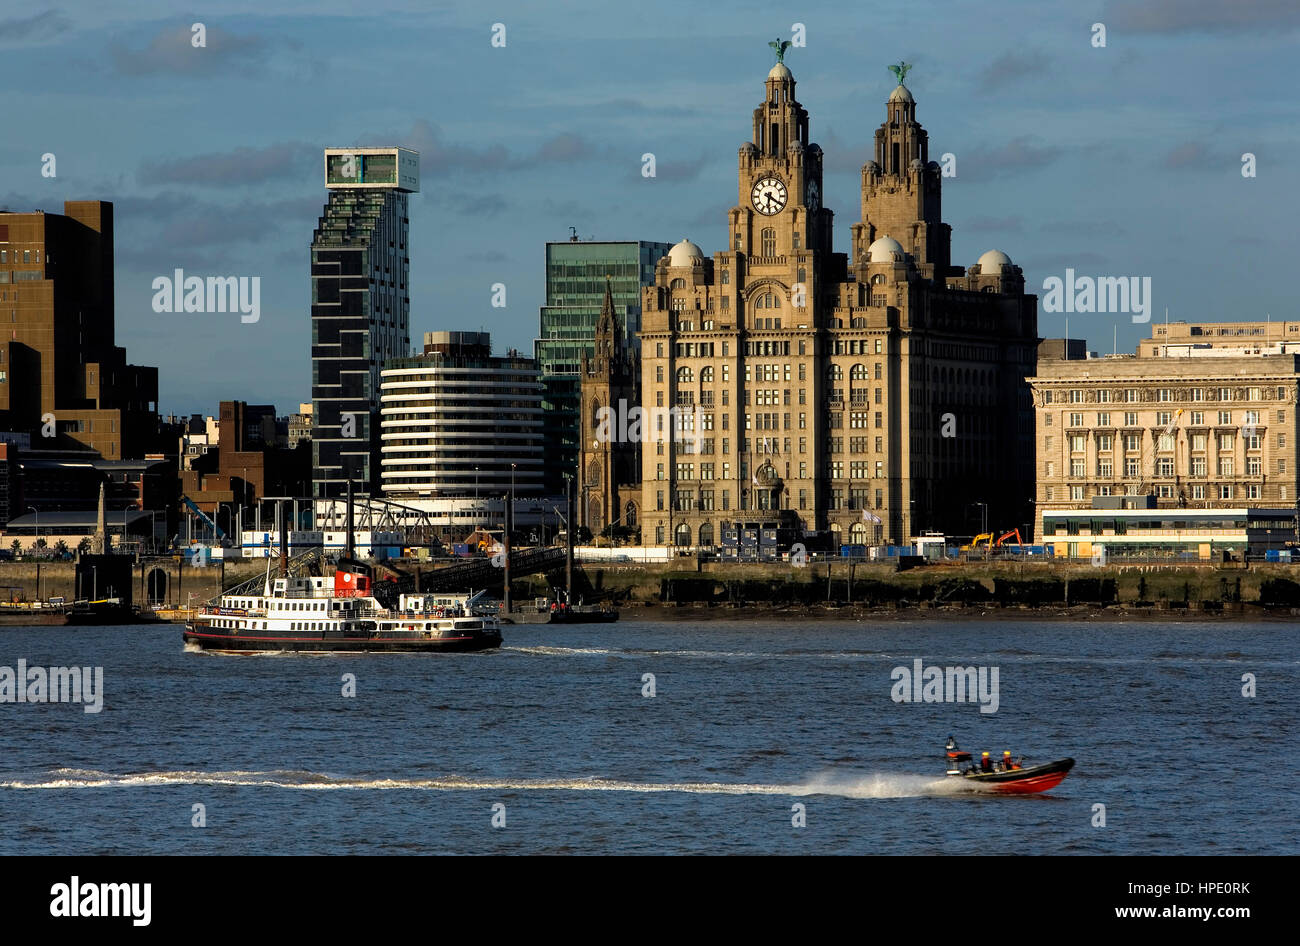 Skyline of the City, as seen from Mersey river.Liverpool. England. UK - Stock Image